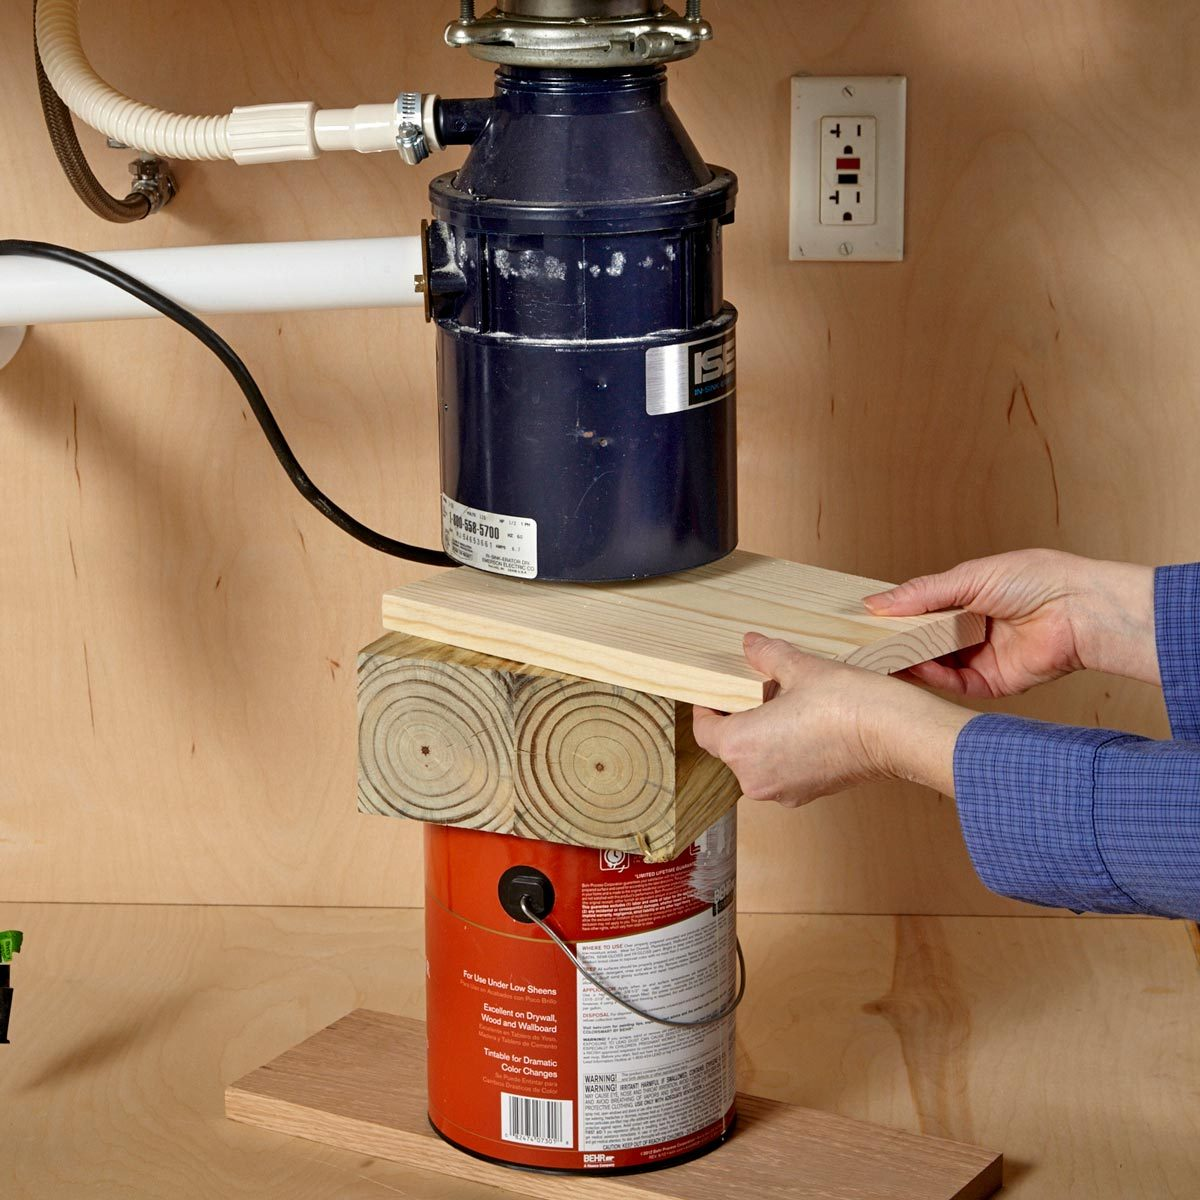 Garbage Disposal Installation Guide Easy Family Handyman